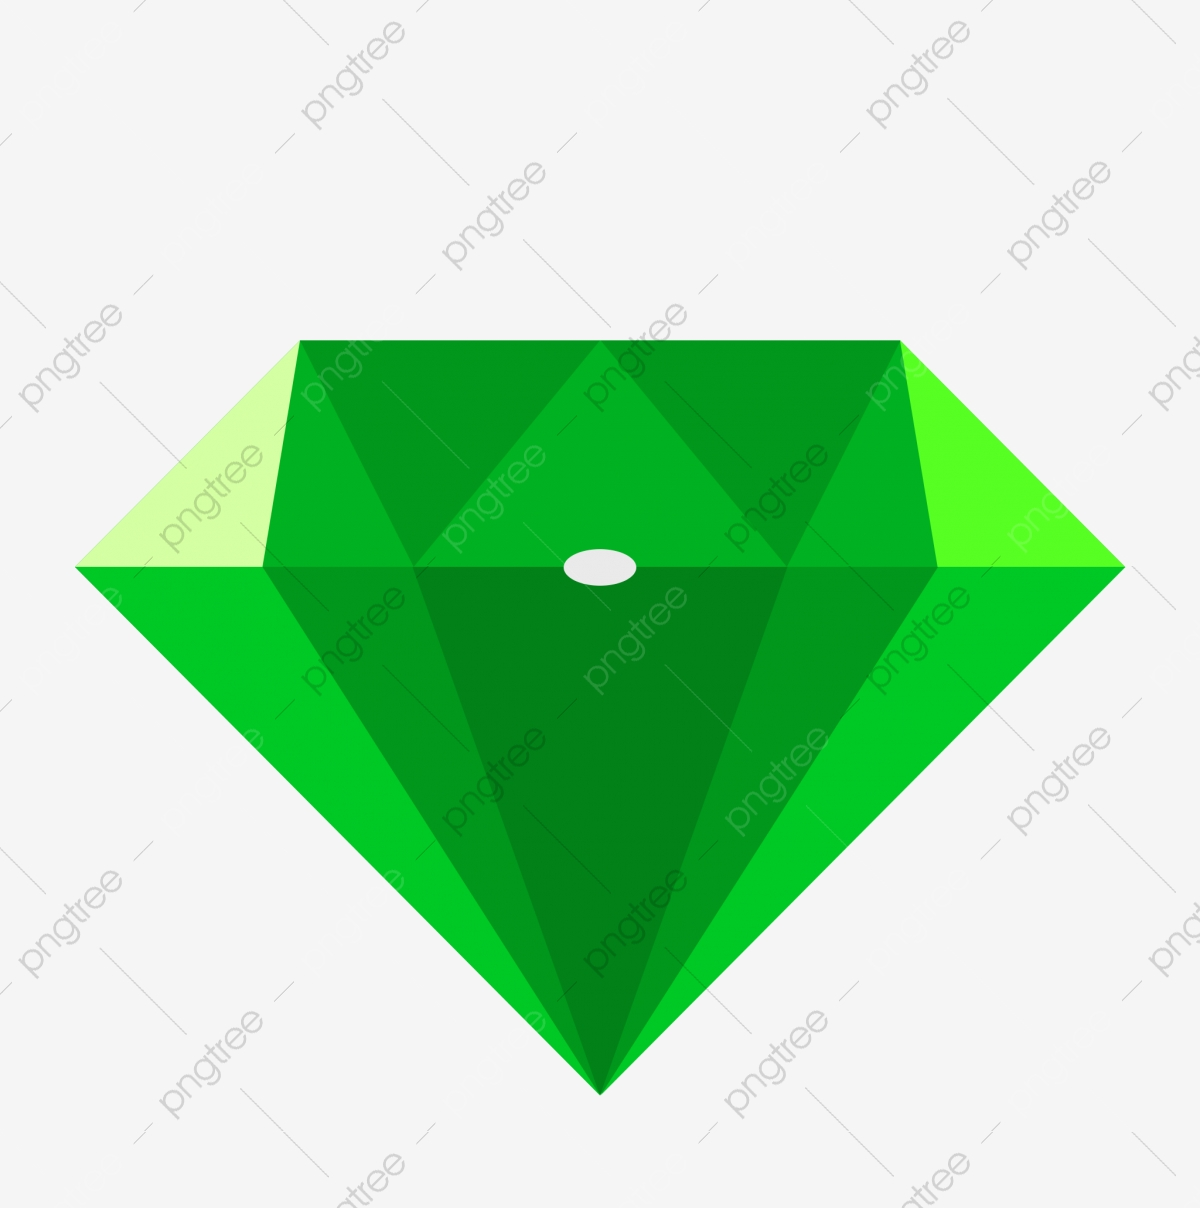 Diamond green. Gemstone png transparent clipart